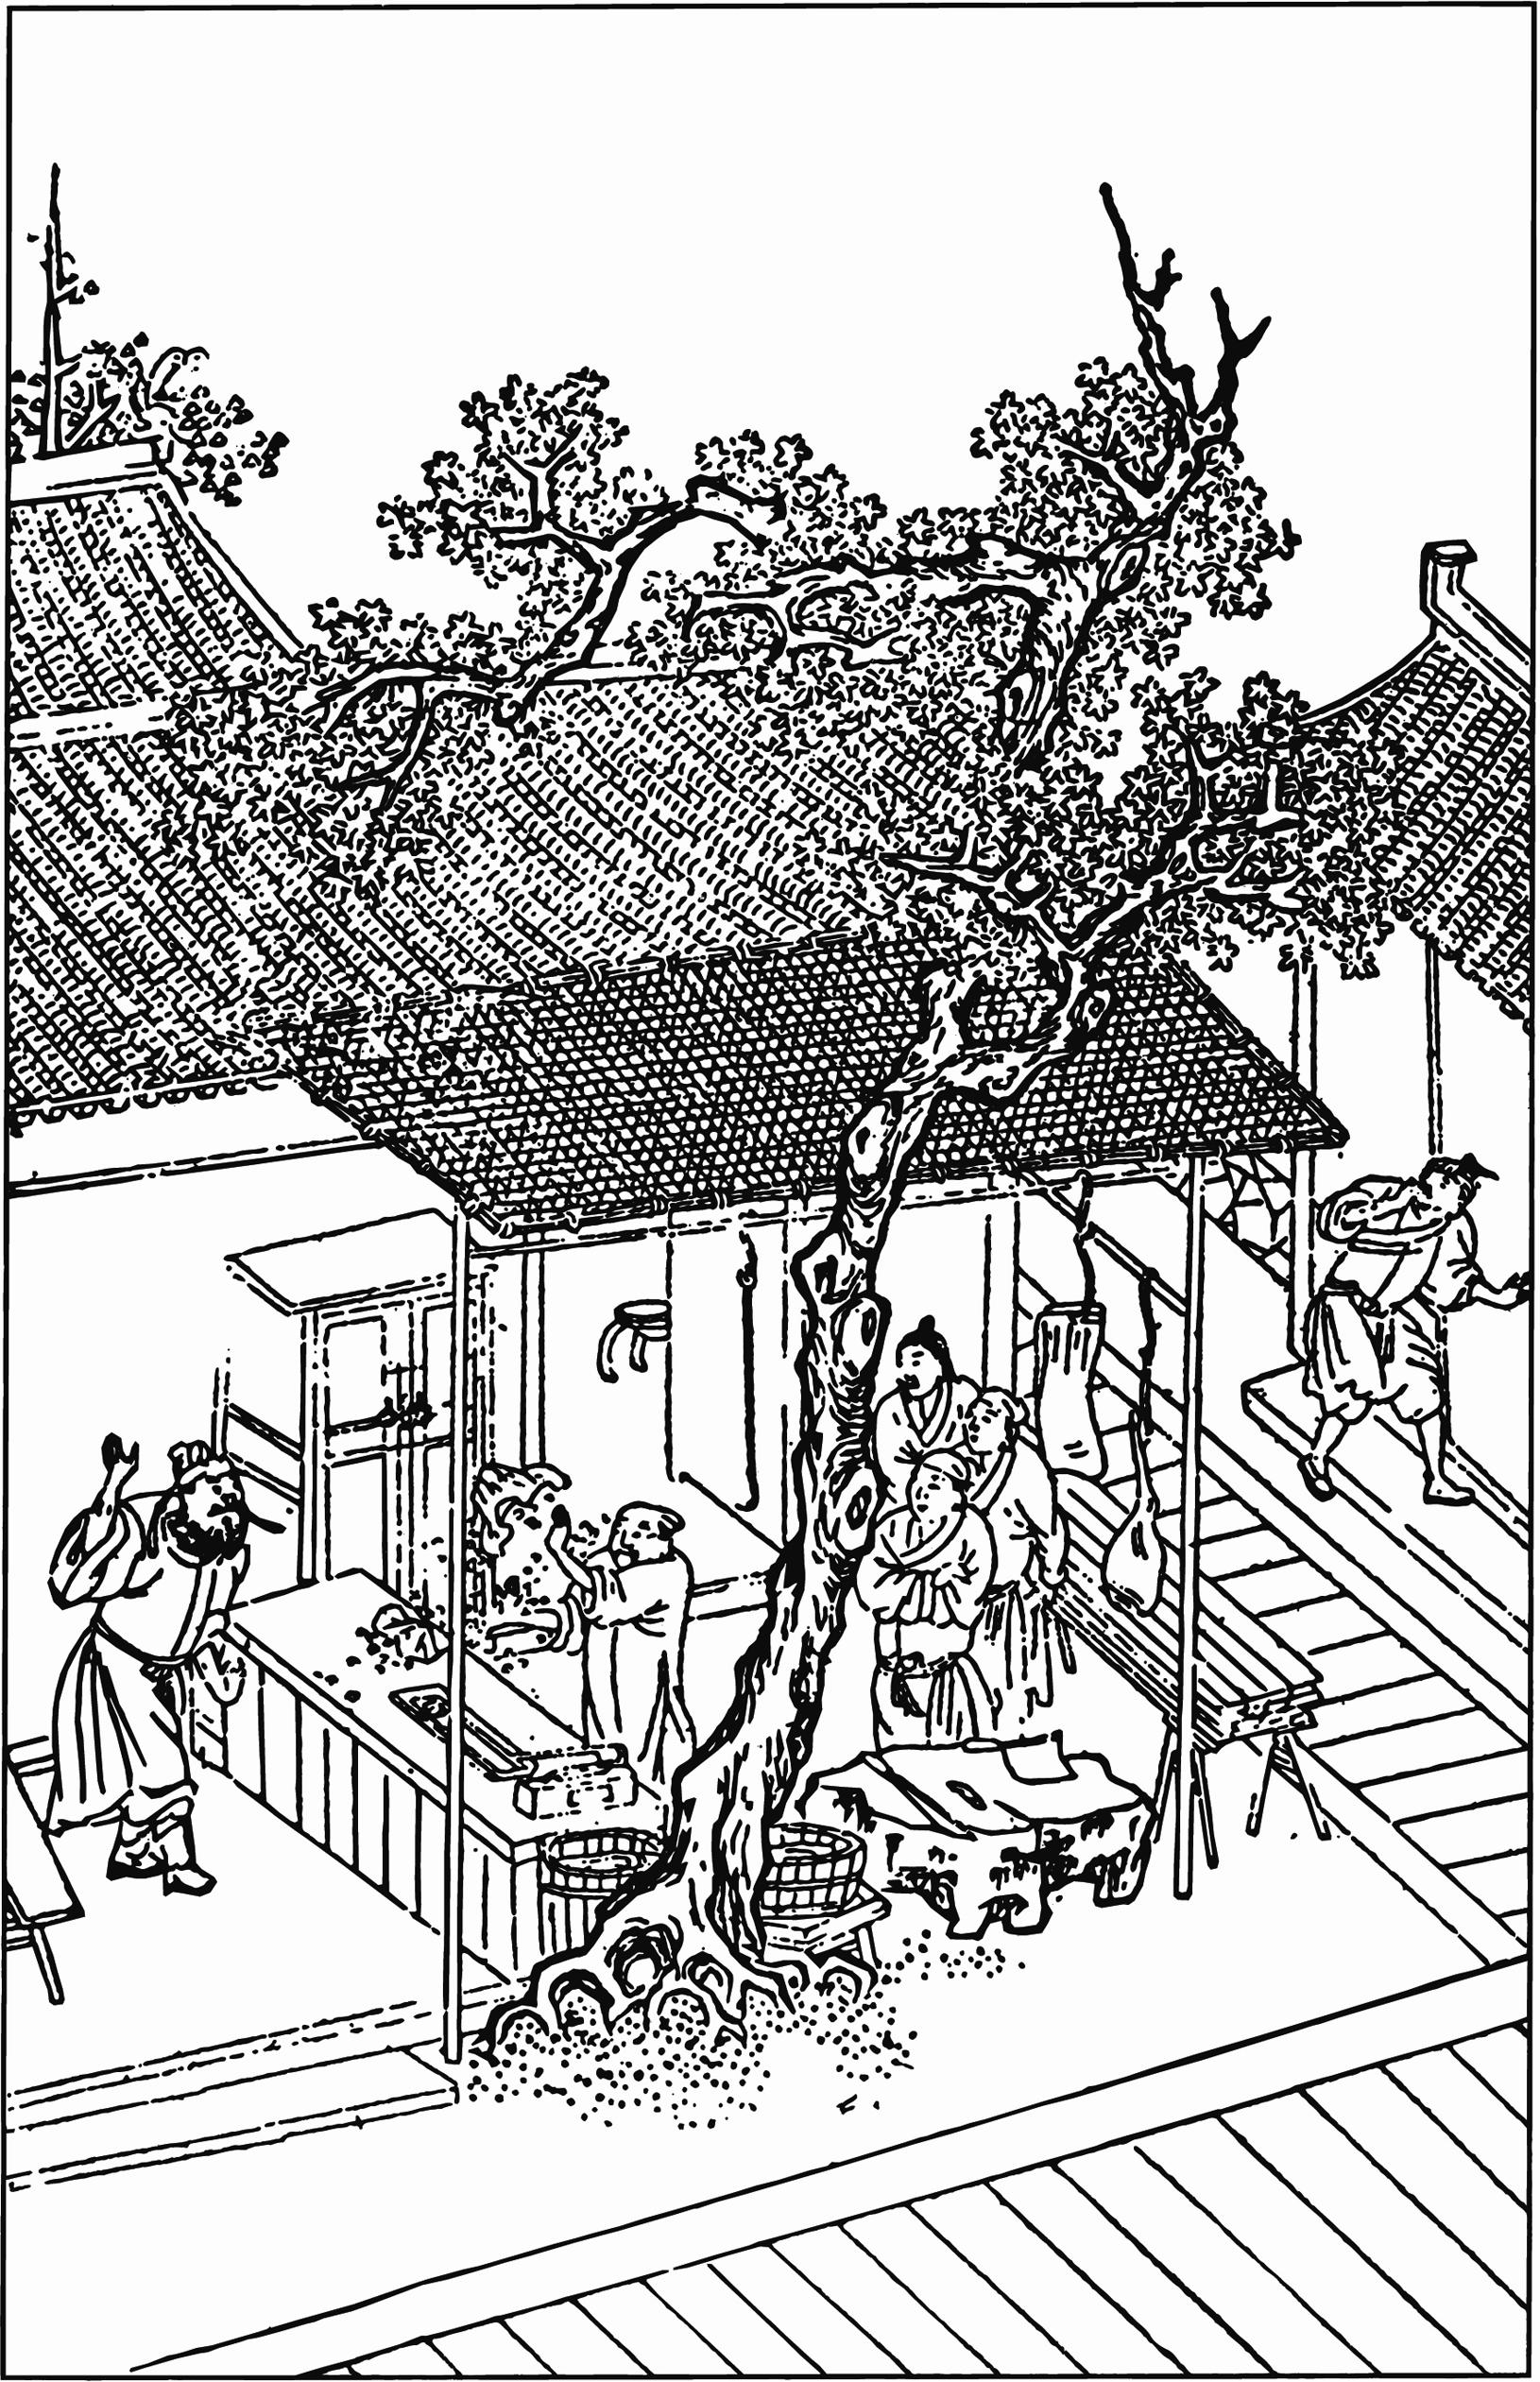 Illustration from a 15th century woodcut edition